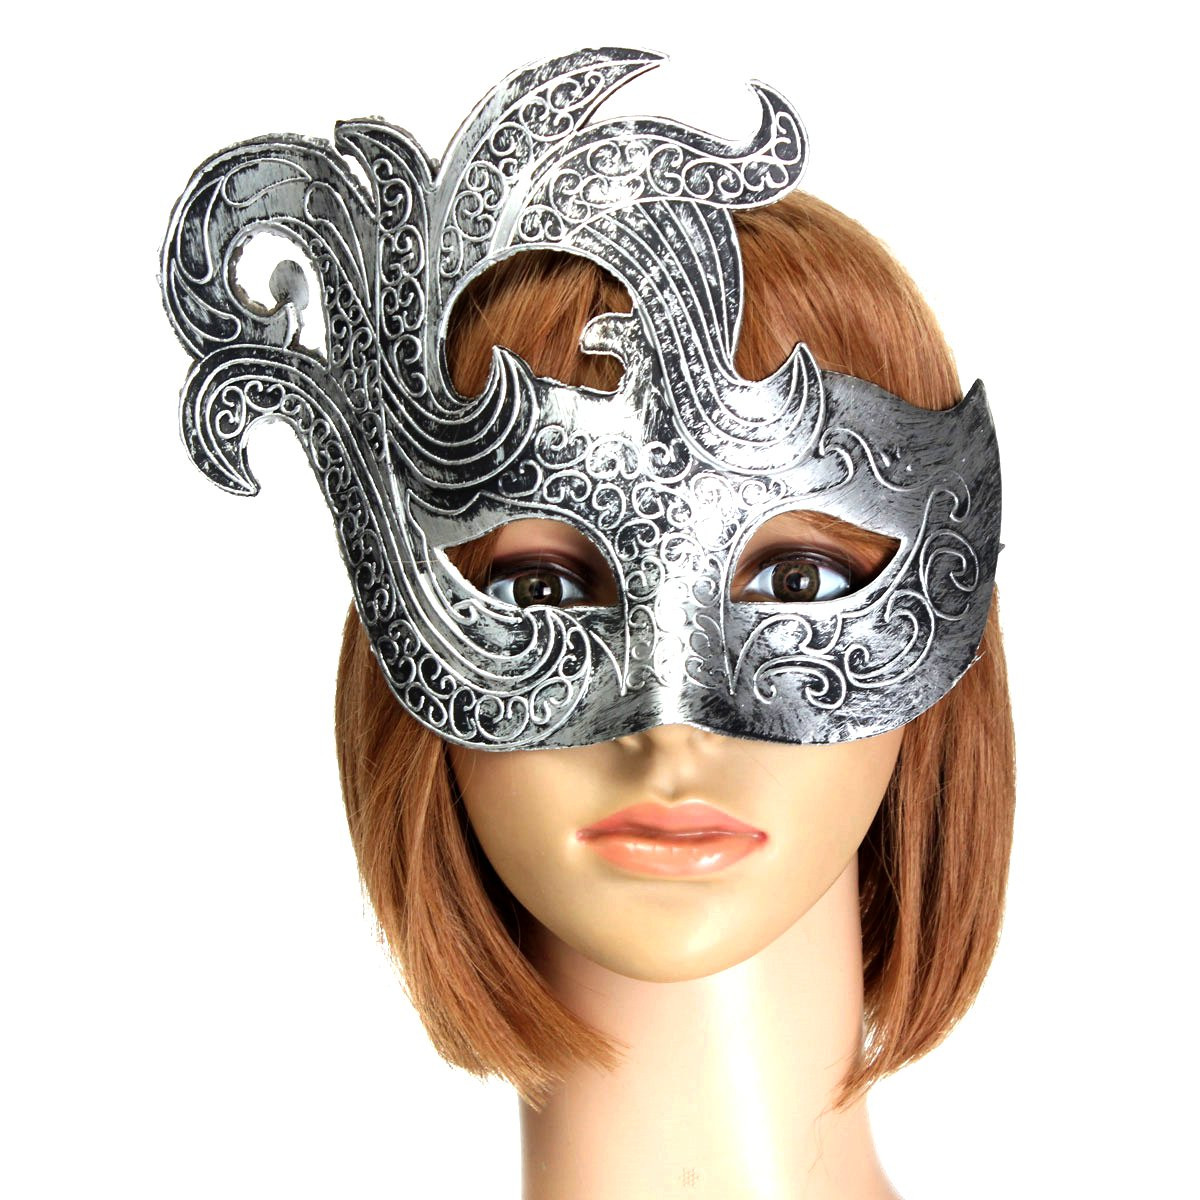 Vintage Half Face Phoenix Mask Roman Greek Mam Lady Mask Costume Masquerade Ball Party Decor